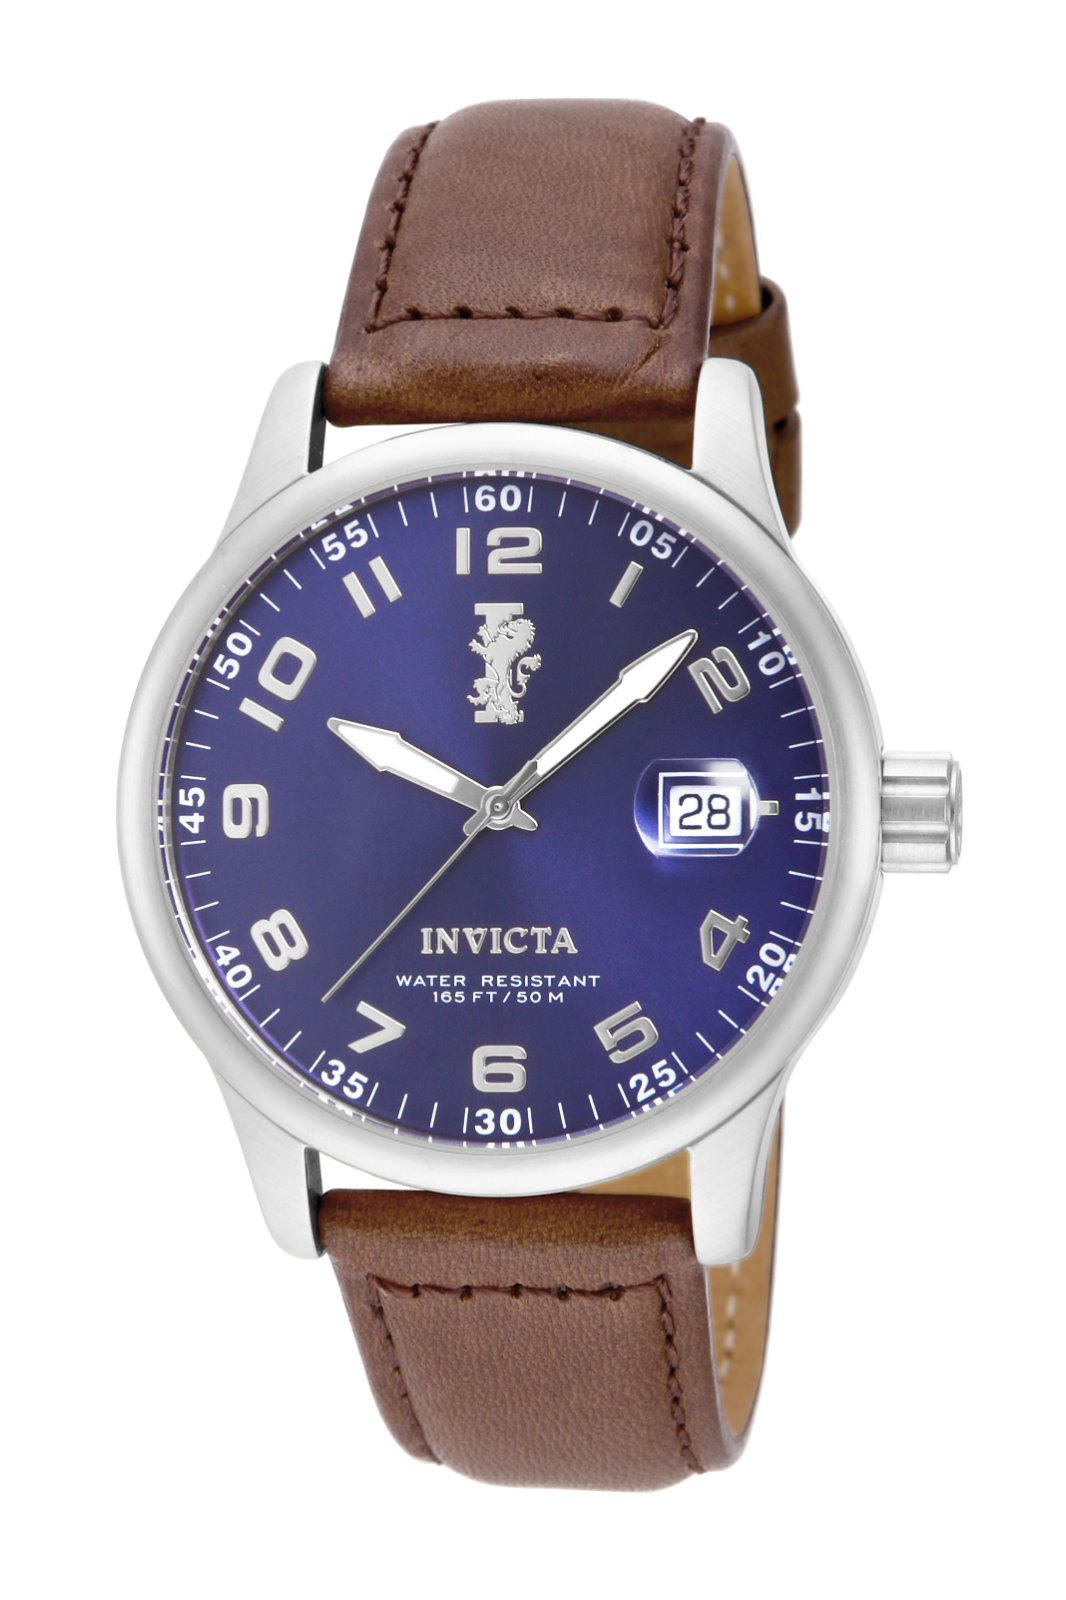 Invicta I-Force 15254 Men's Watch - 44mm